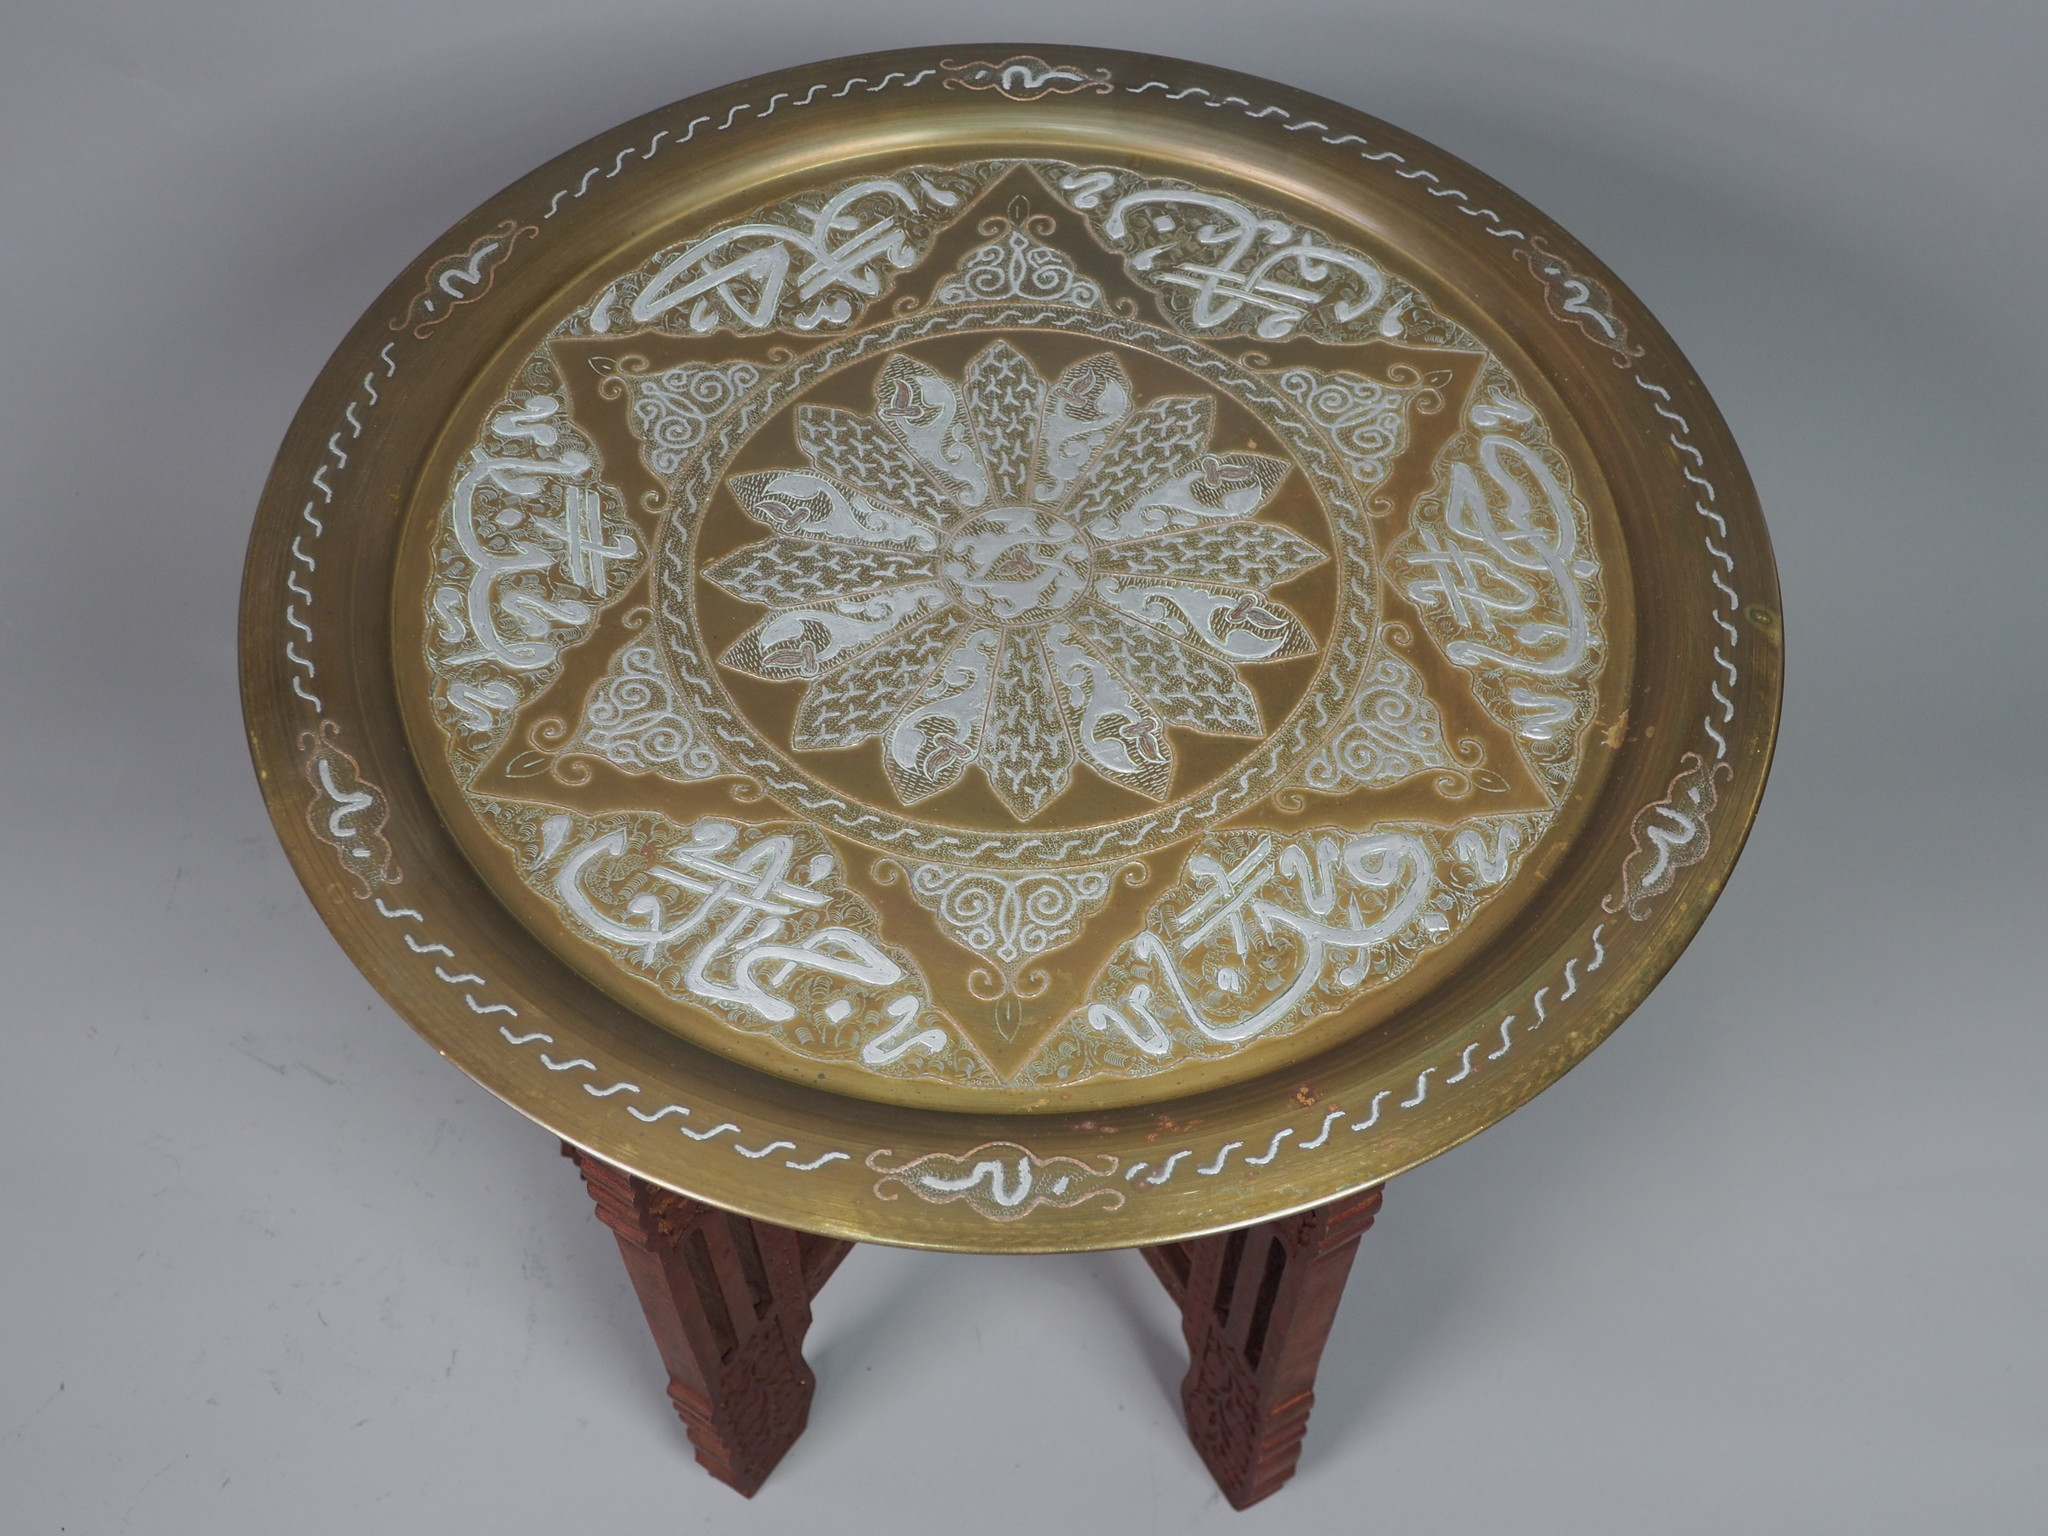 50 cm Antique ottoman orient Islamic  Hammer Engraved Brass table Tray Syria Morocco, Egypt Mamluk Cairoware with arabic calligraphy 21/4